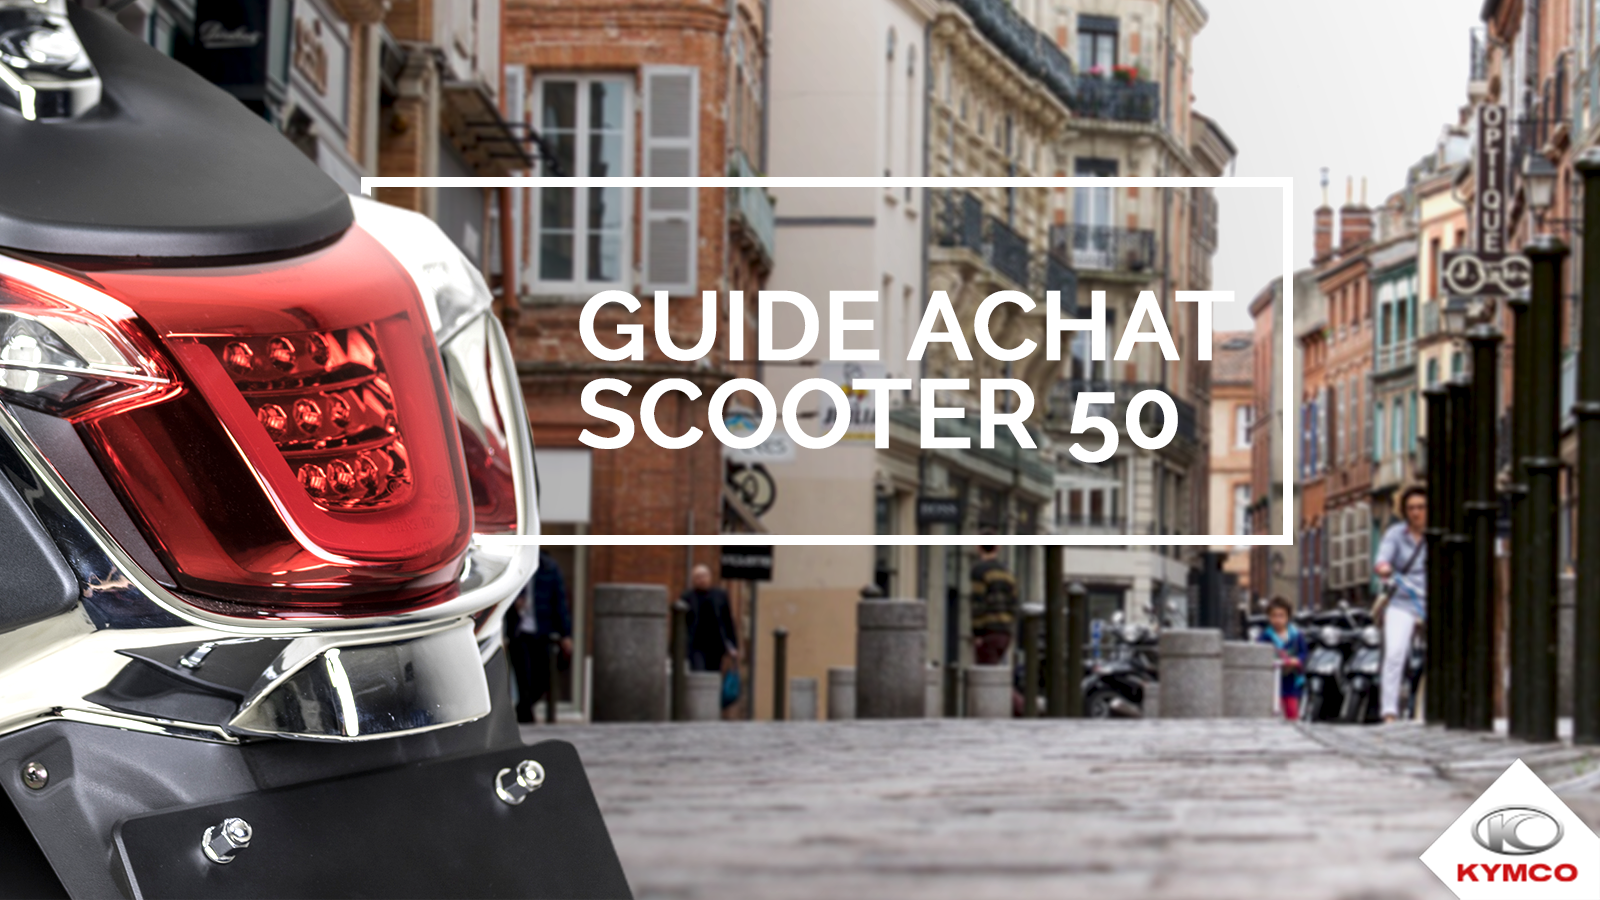 Guide_achat_scooters50-featured-2